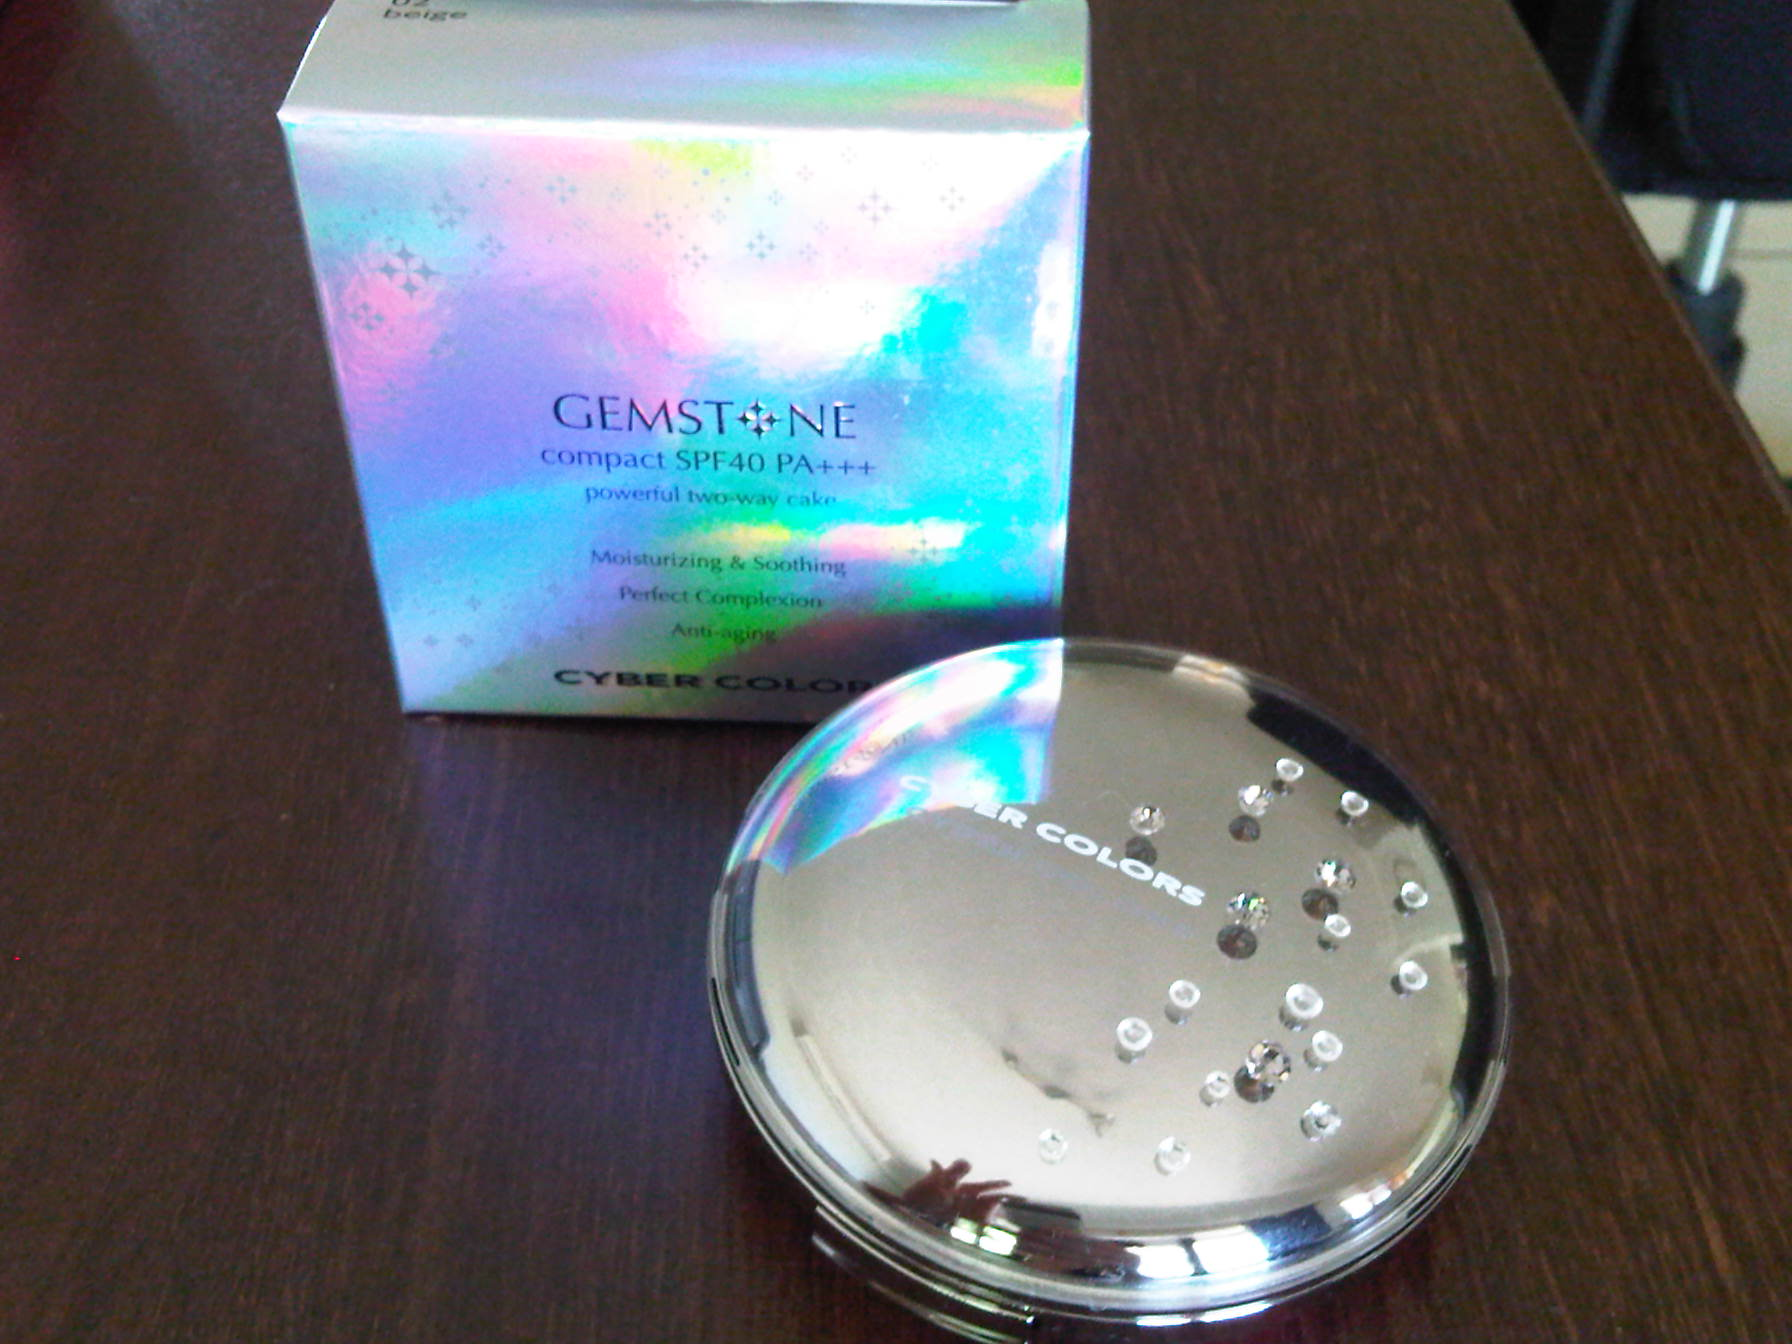 review cyber colors gemstone compact spf40 pa anna cai makeup